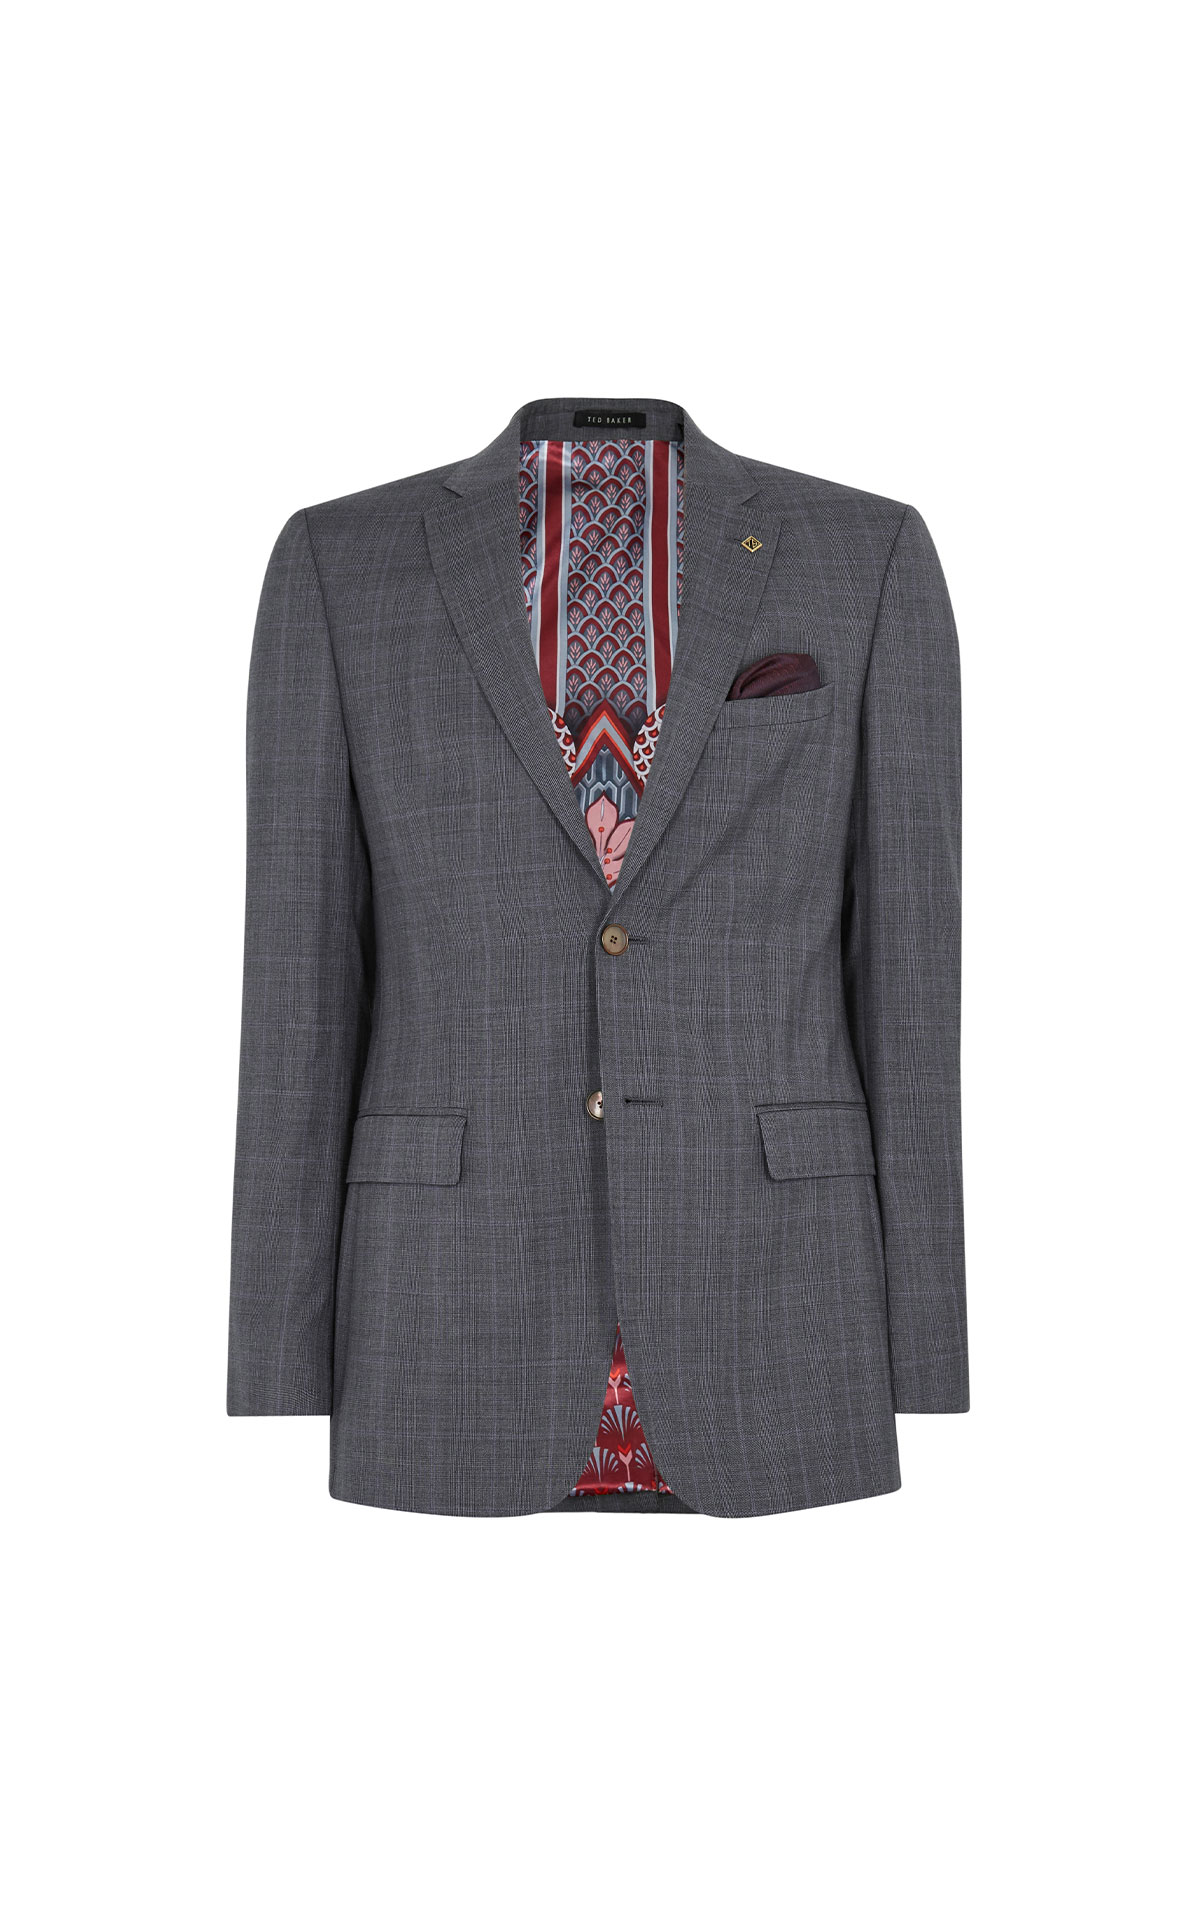 Ted Baker Westj debonair check jacket from Bicester Village